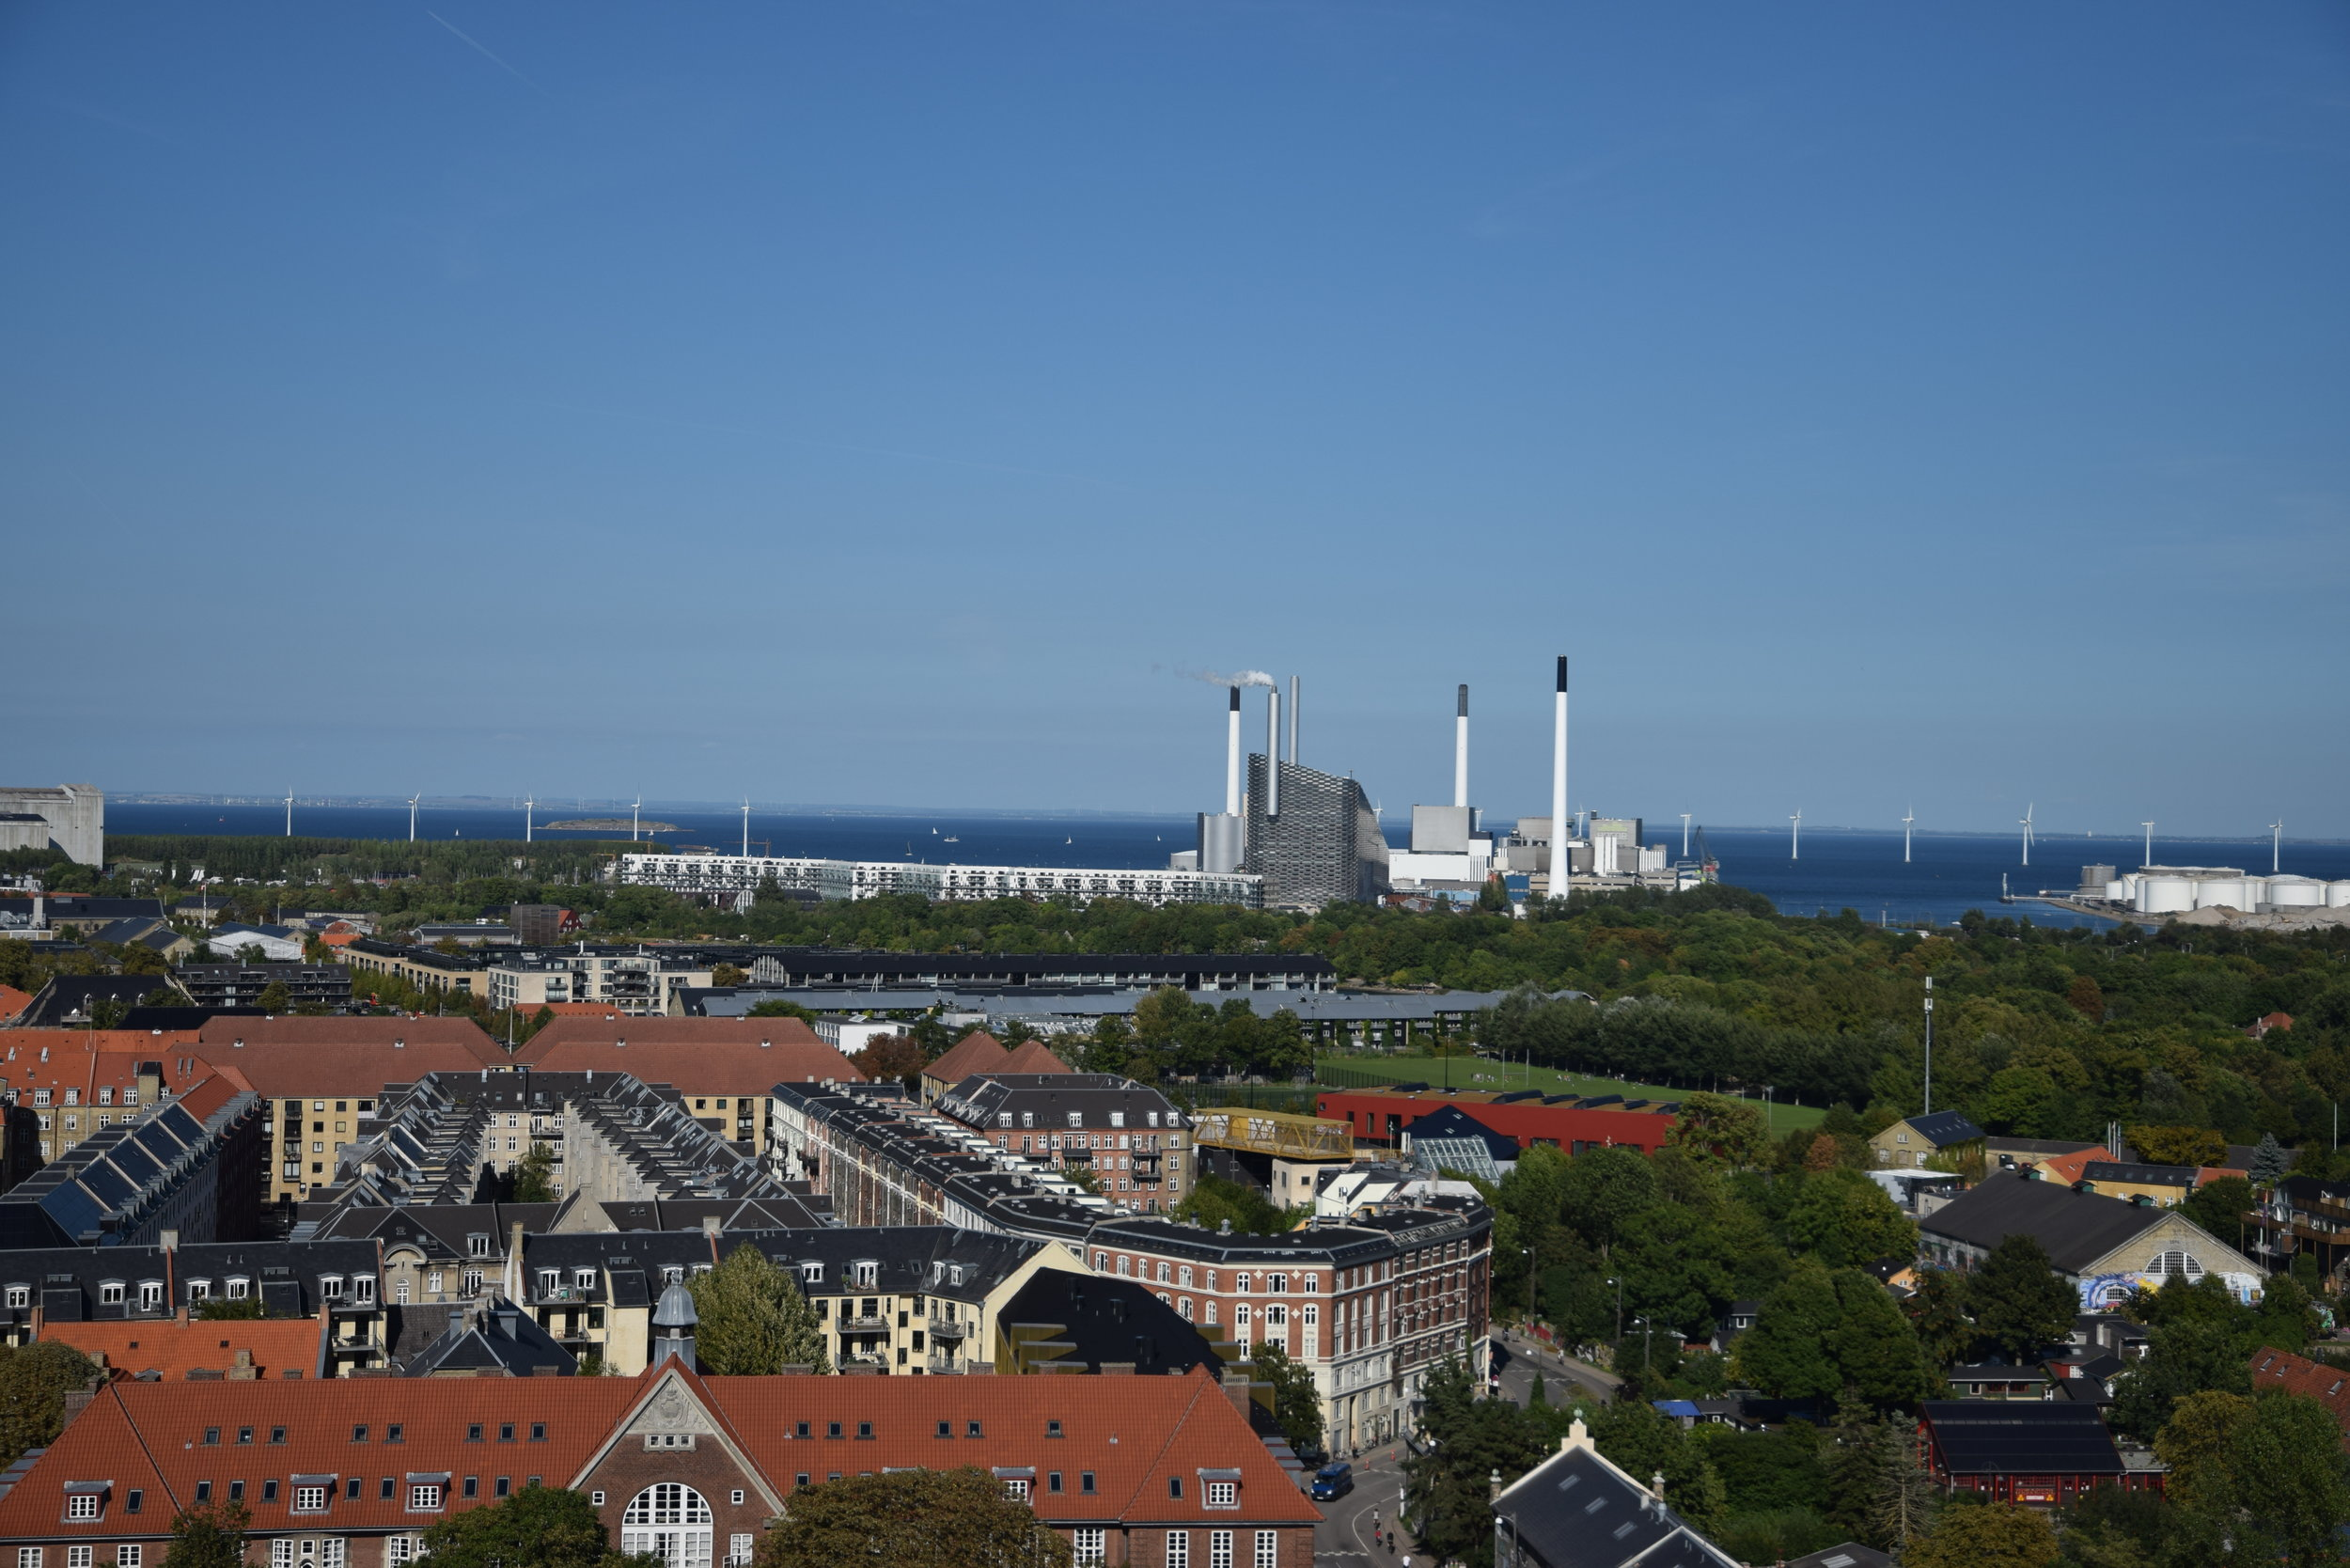 View North: Power Station and Wind Farm